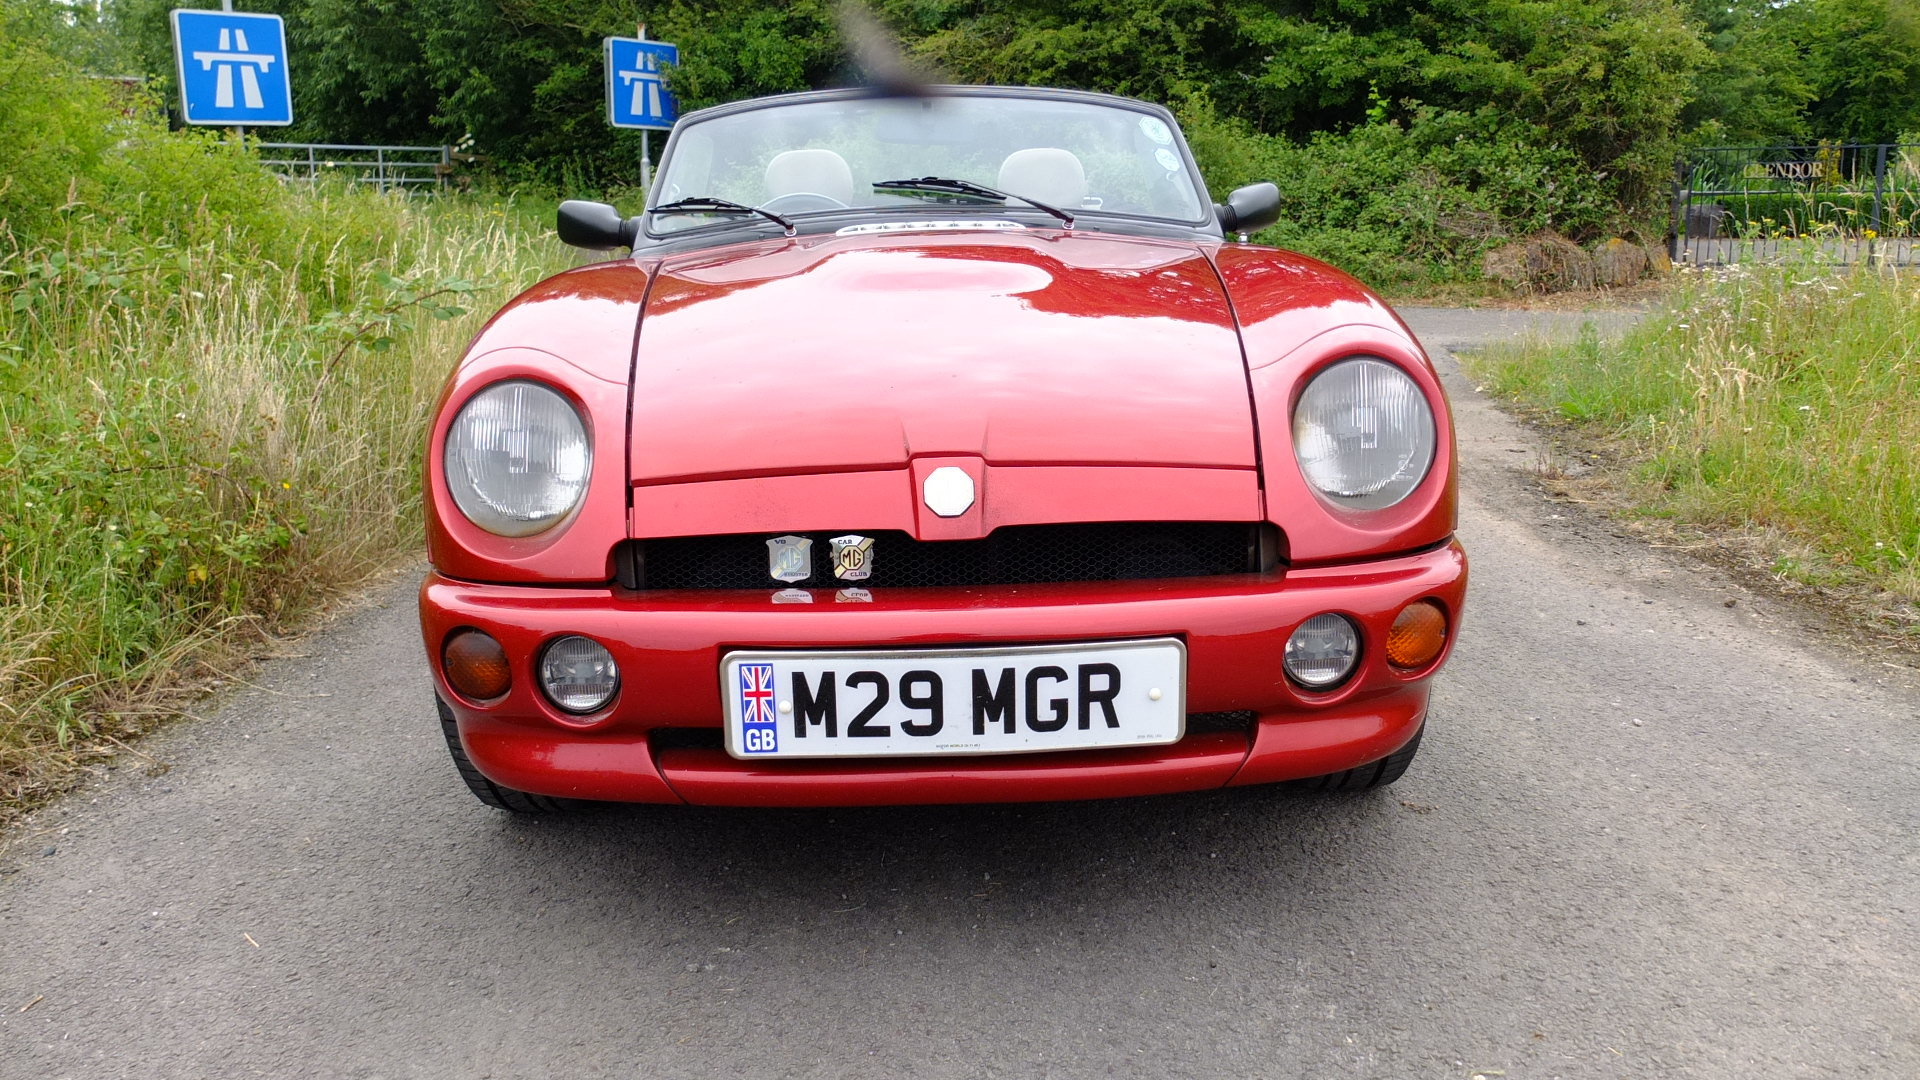 1995 MGRV8 For Sale (picture 4 of 4)